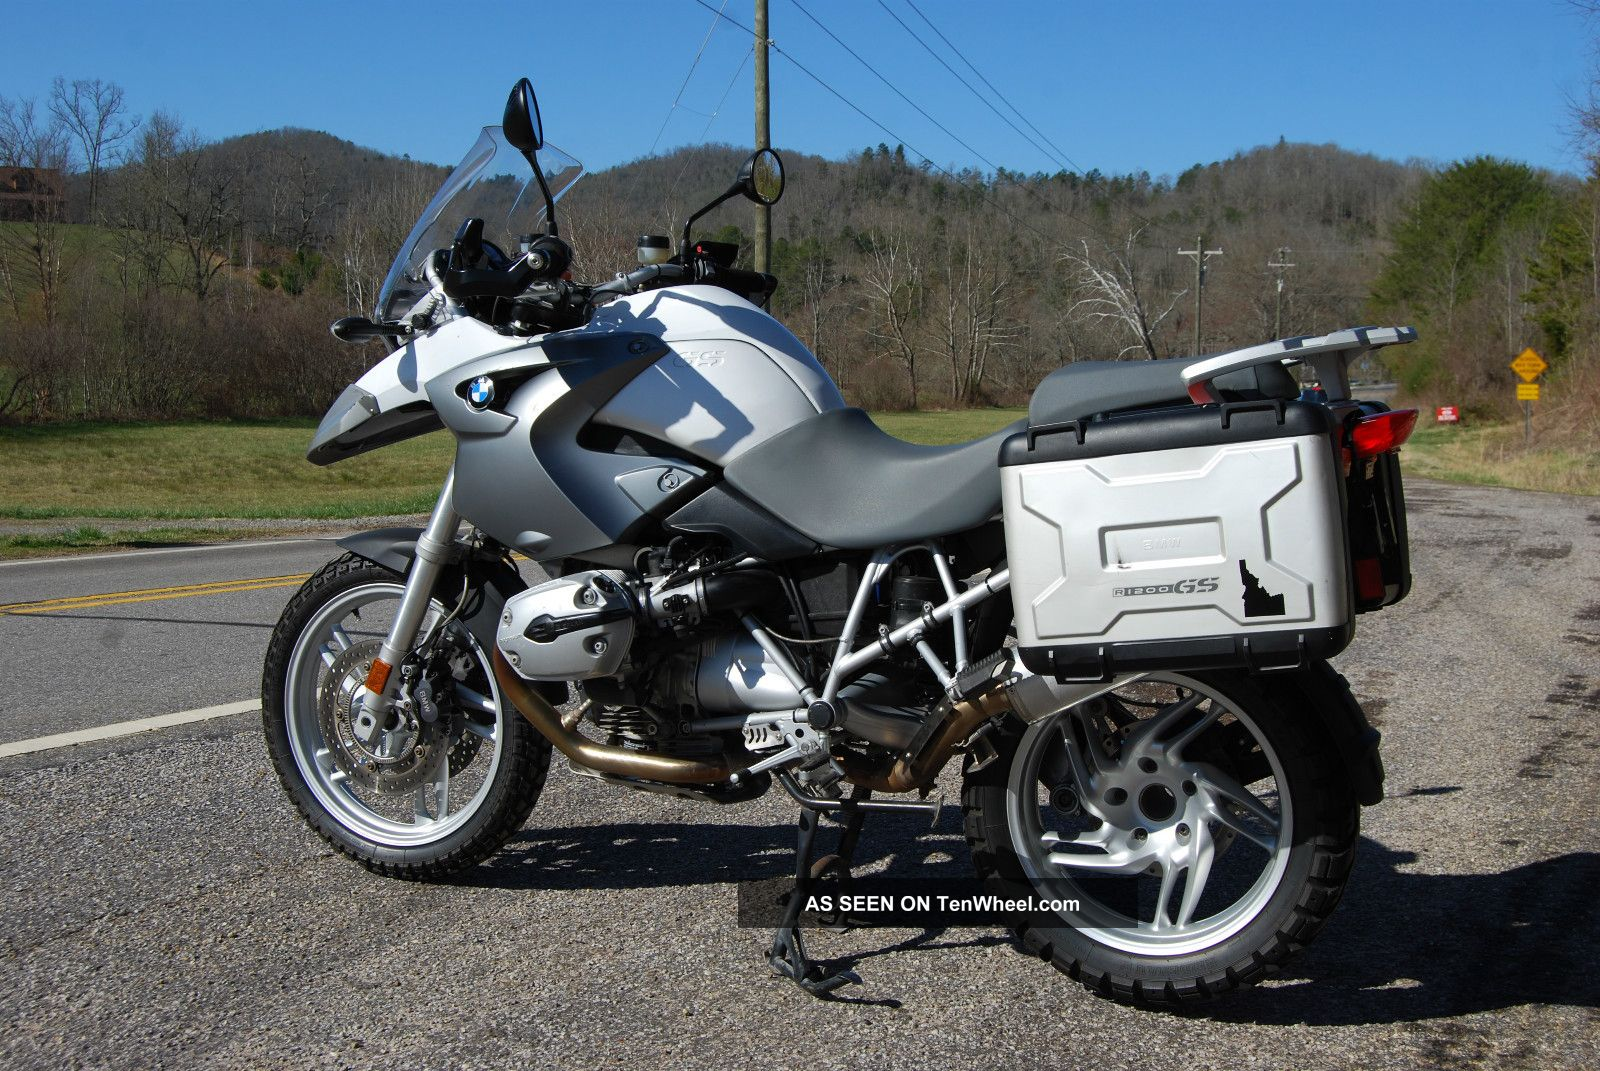 BMW R1200GS 2006 images #77998